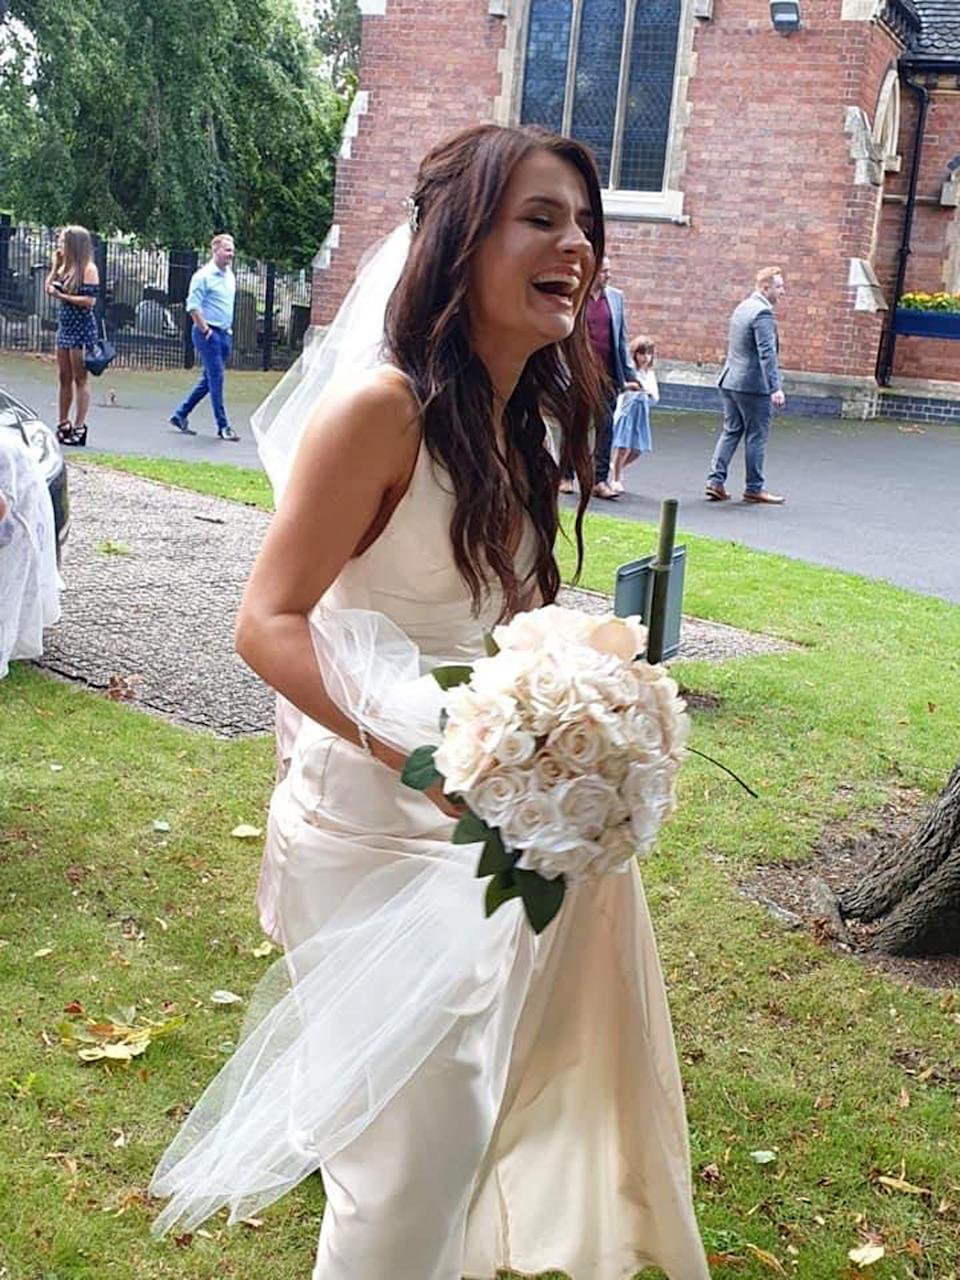 The bride bought her dress on ASOS and made her bouquet. (Caters)